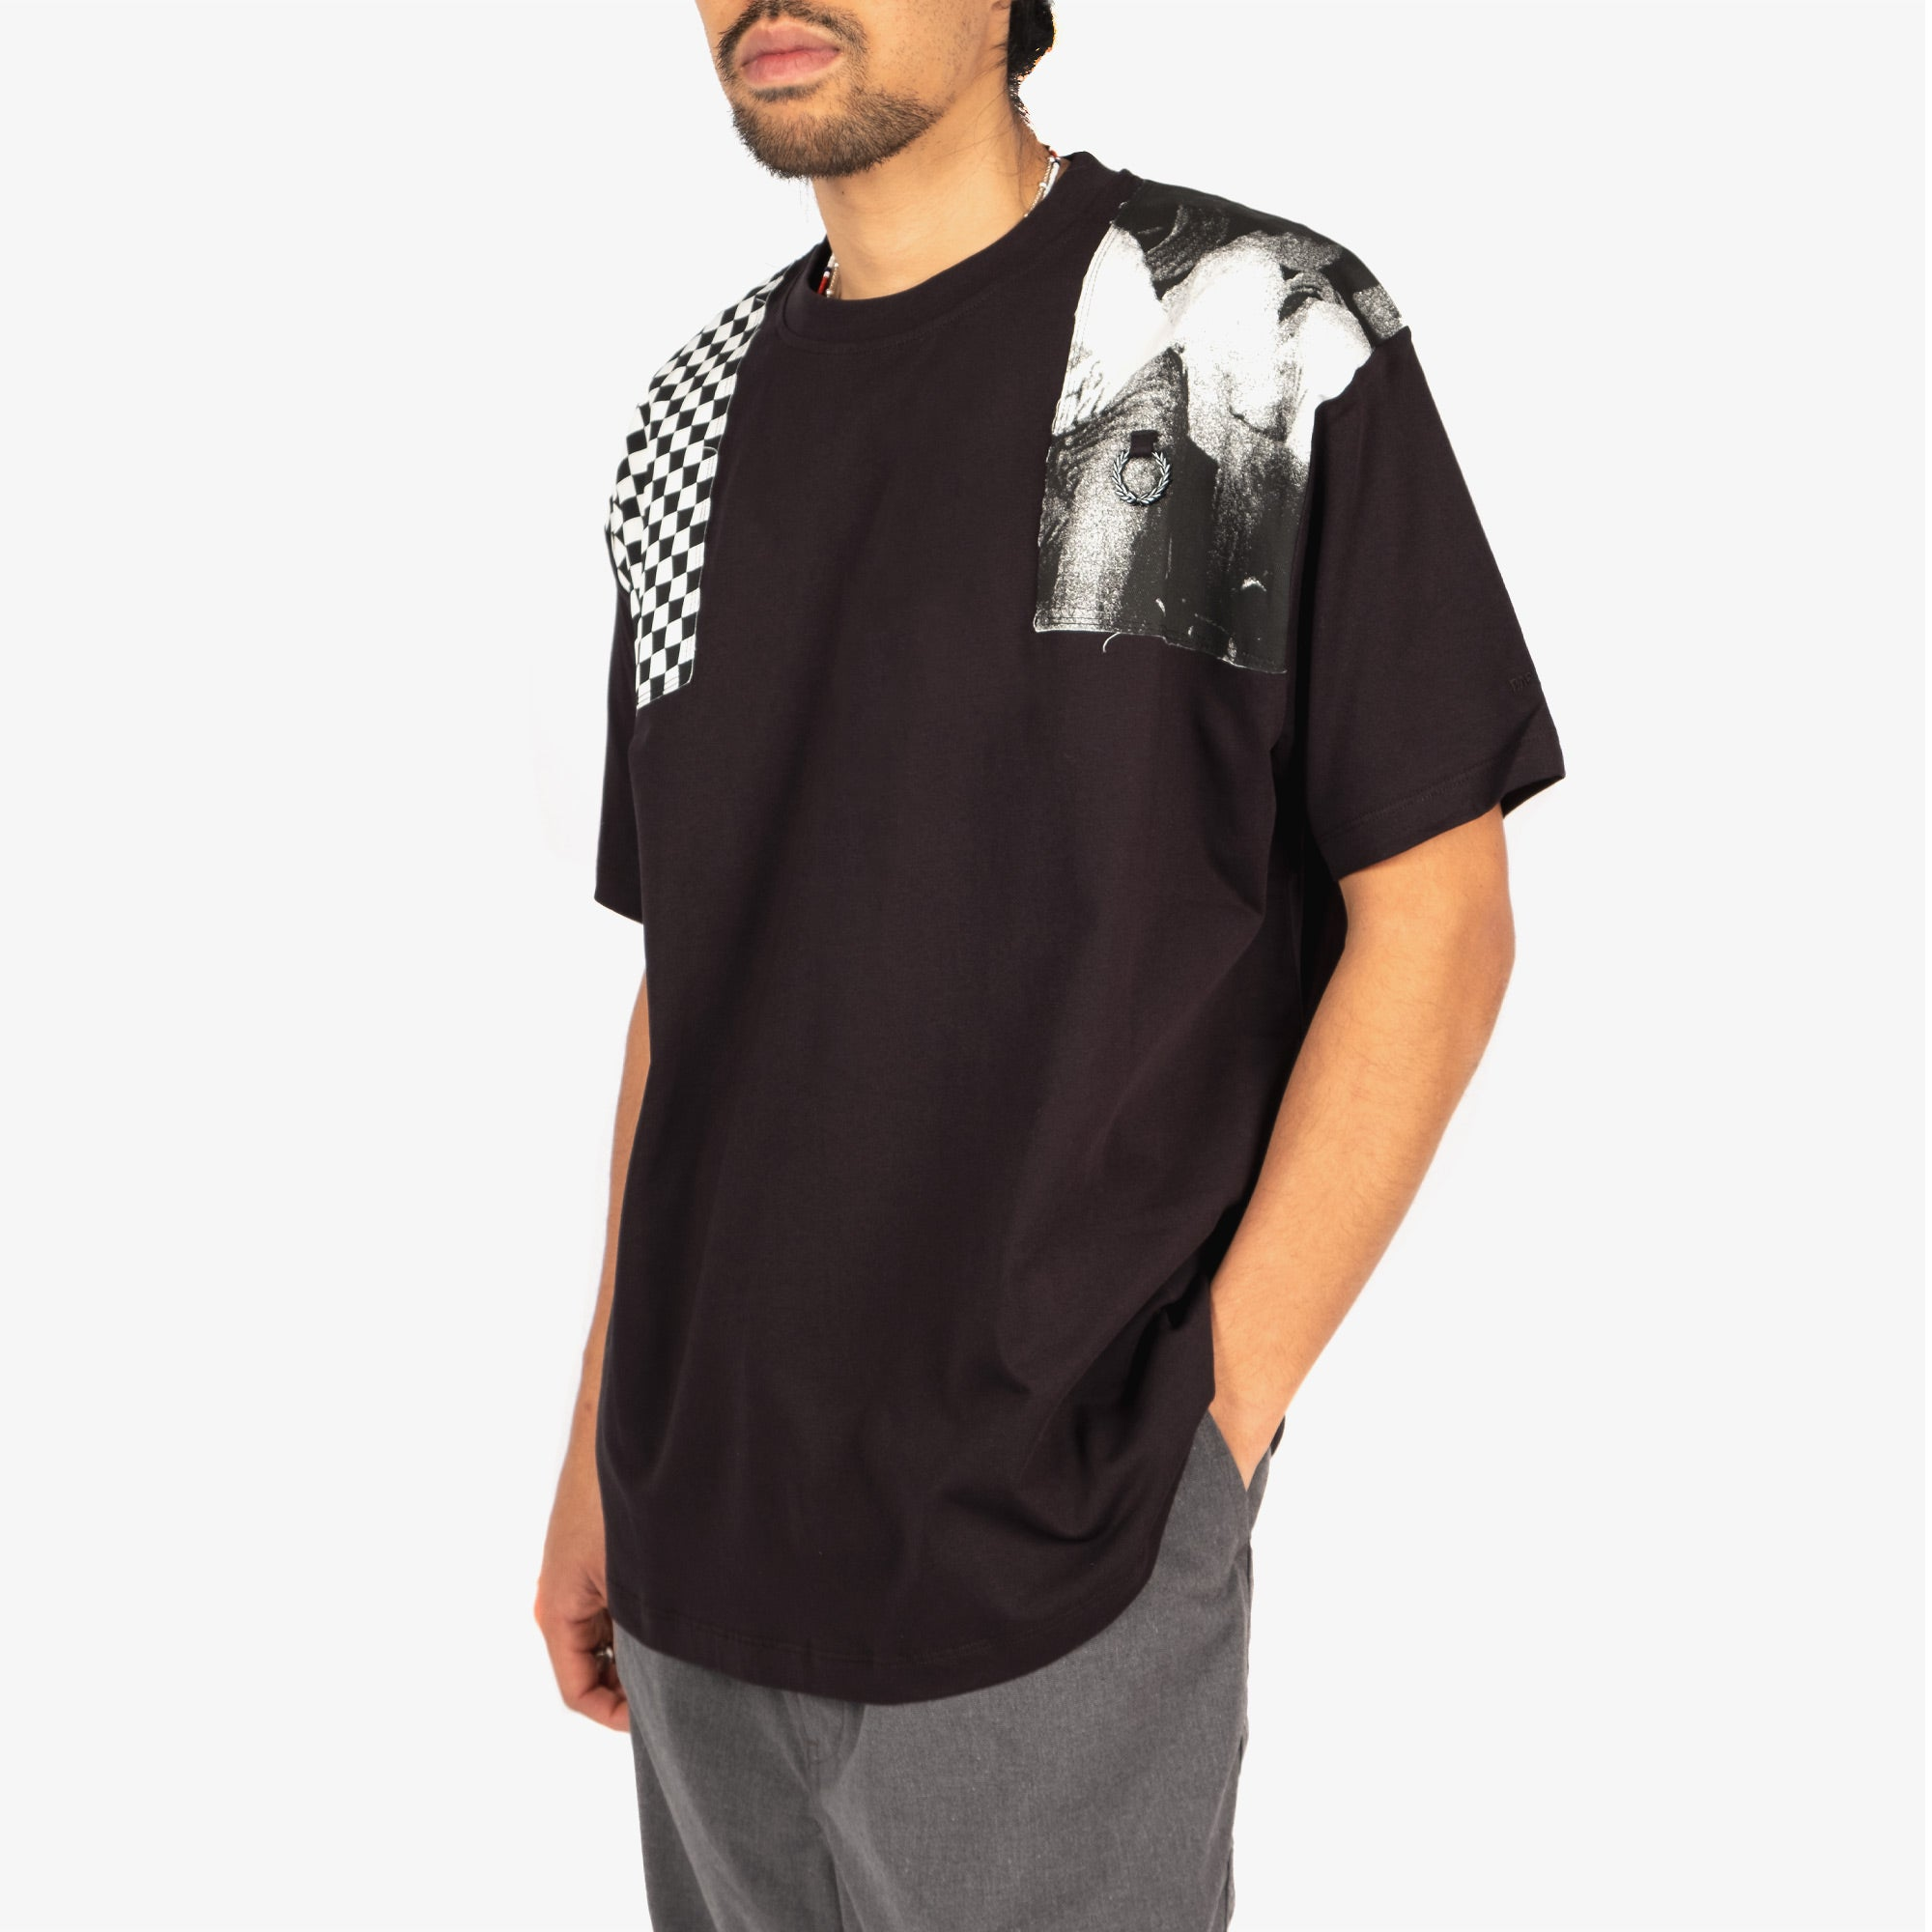 Fred Perry X Raf Simons Oversized Printed Patch Tee - Black 5